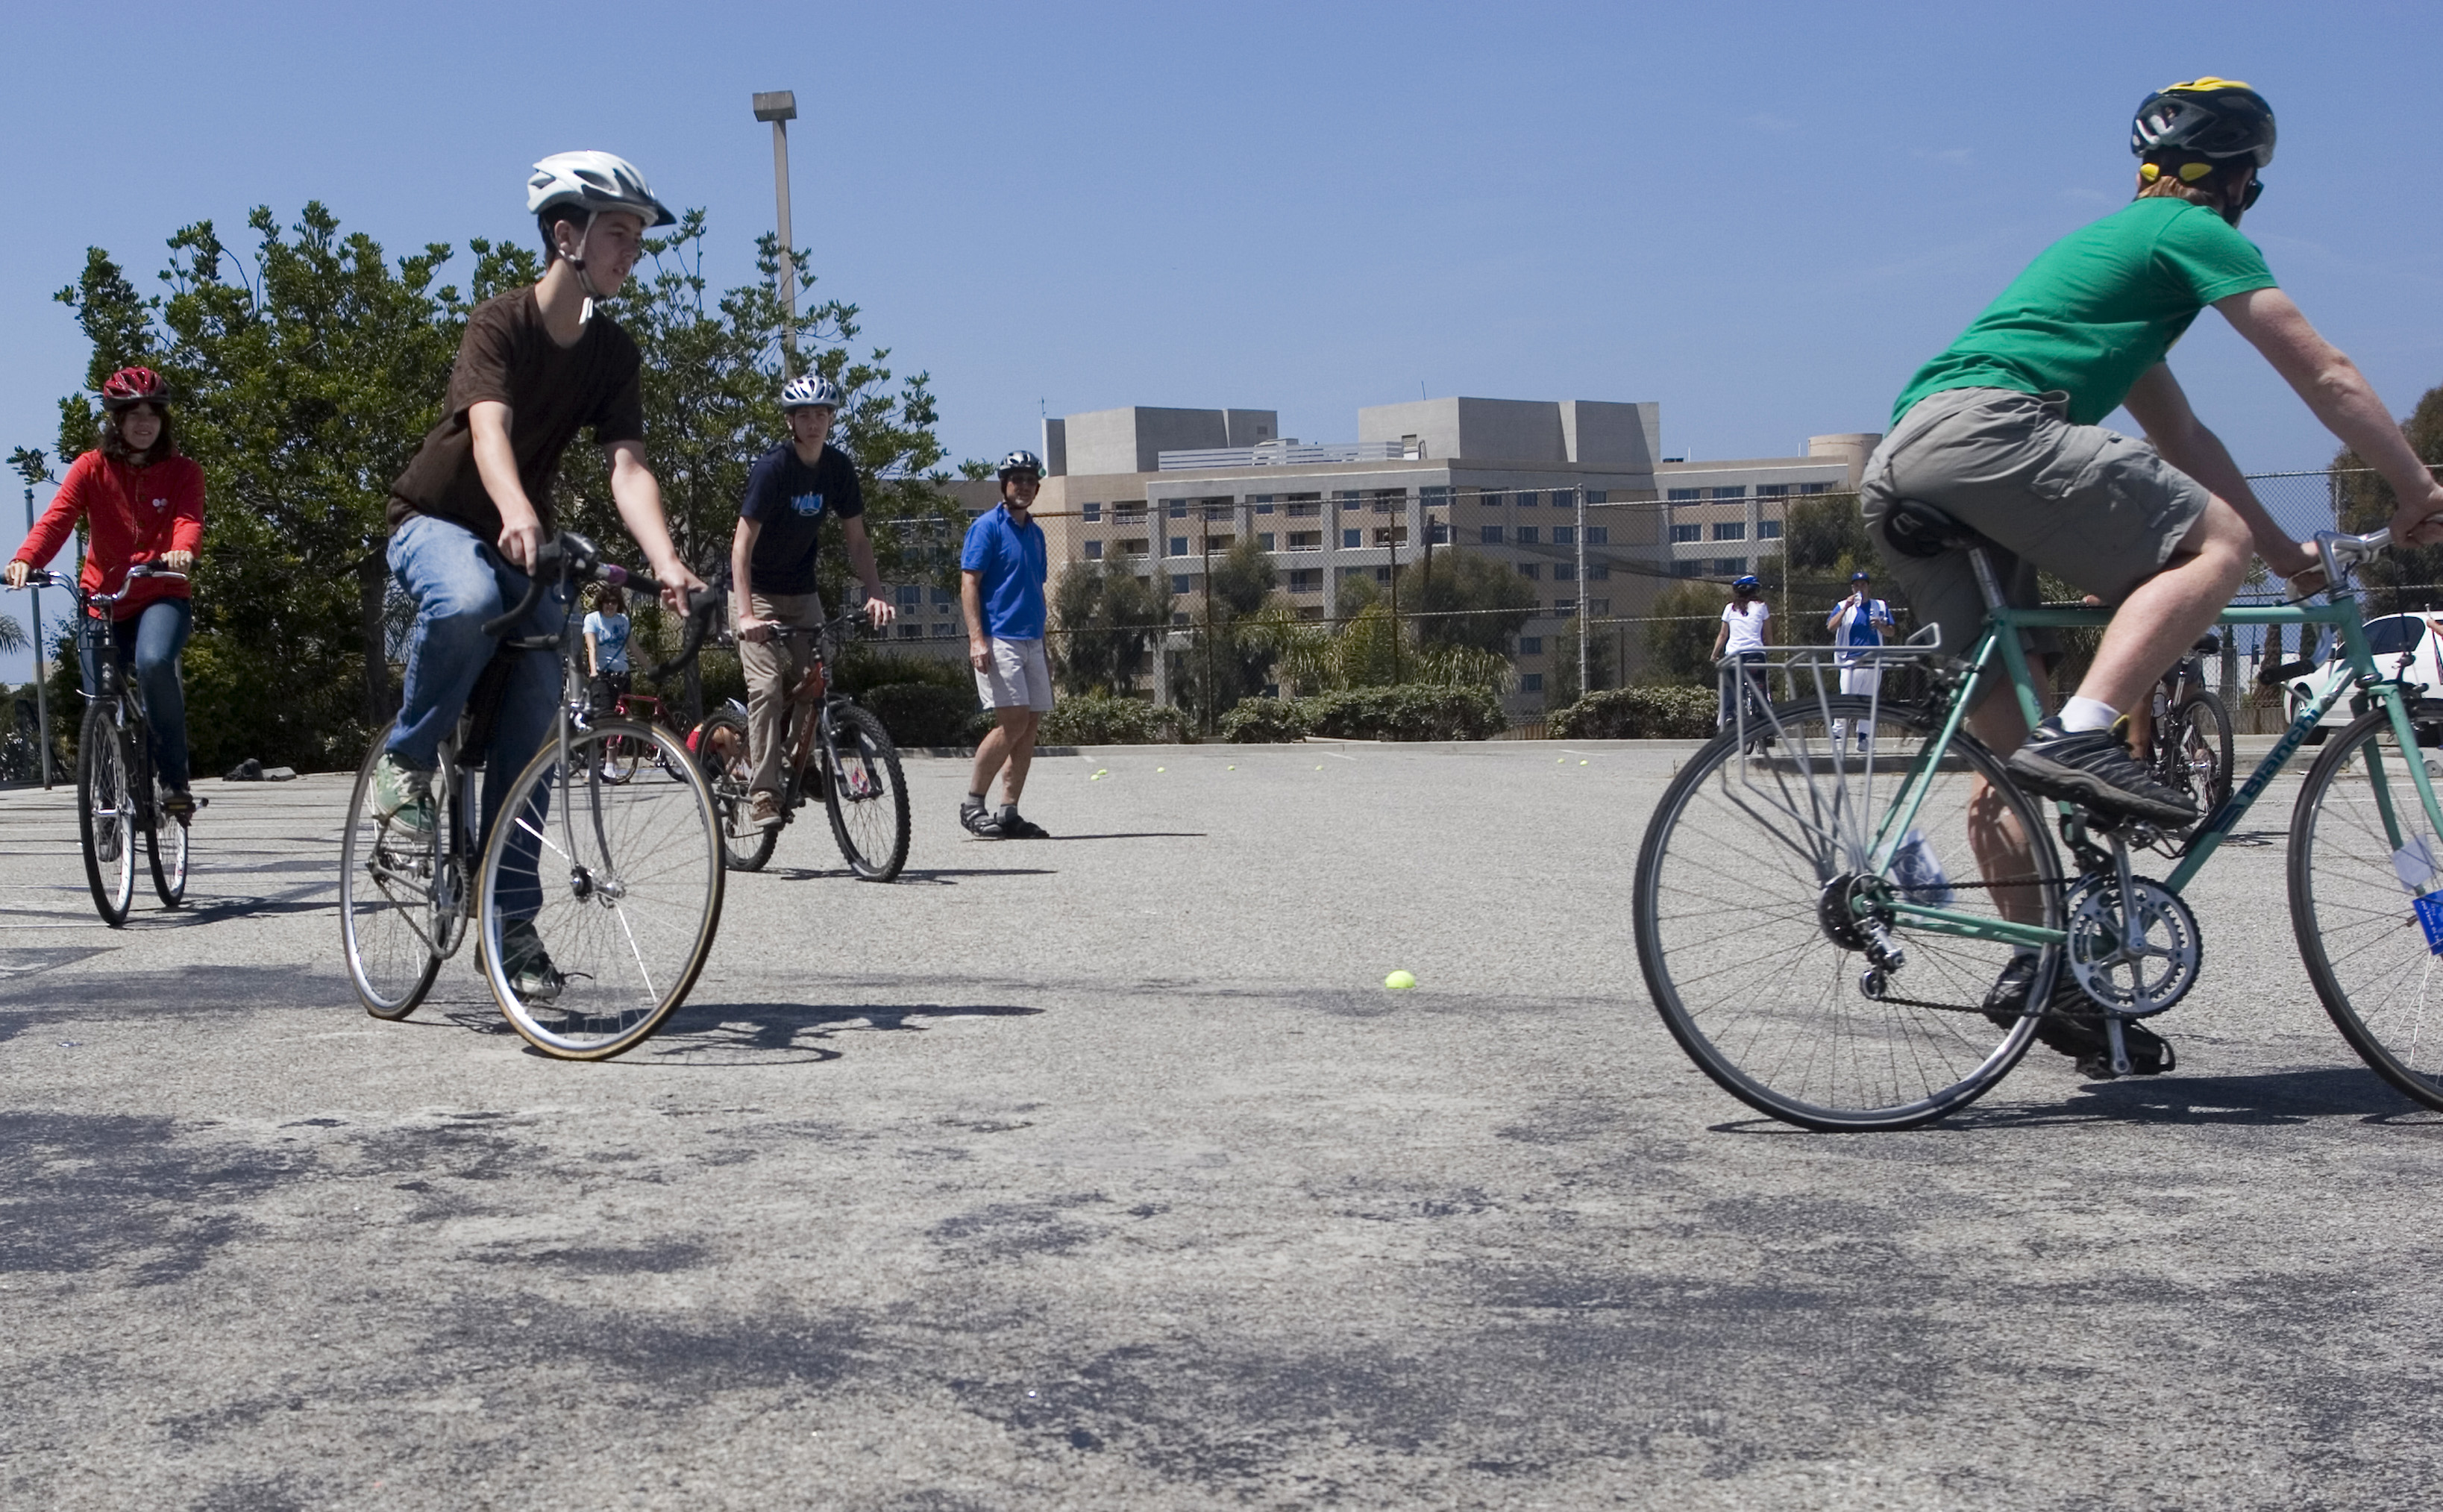 Students at Santa Monica High School learn how to ride bikes safely during a tutorial in 2008. (File photo)